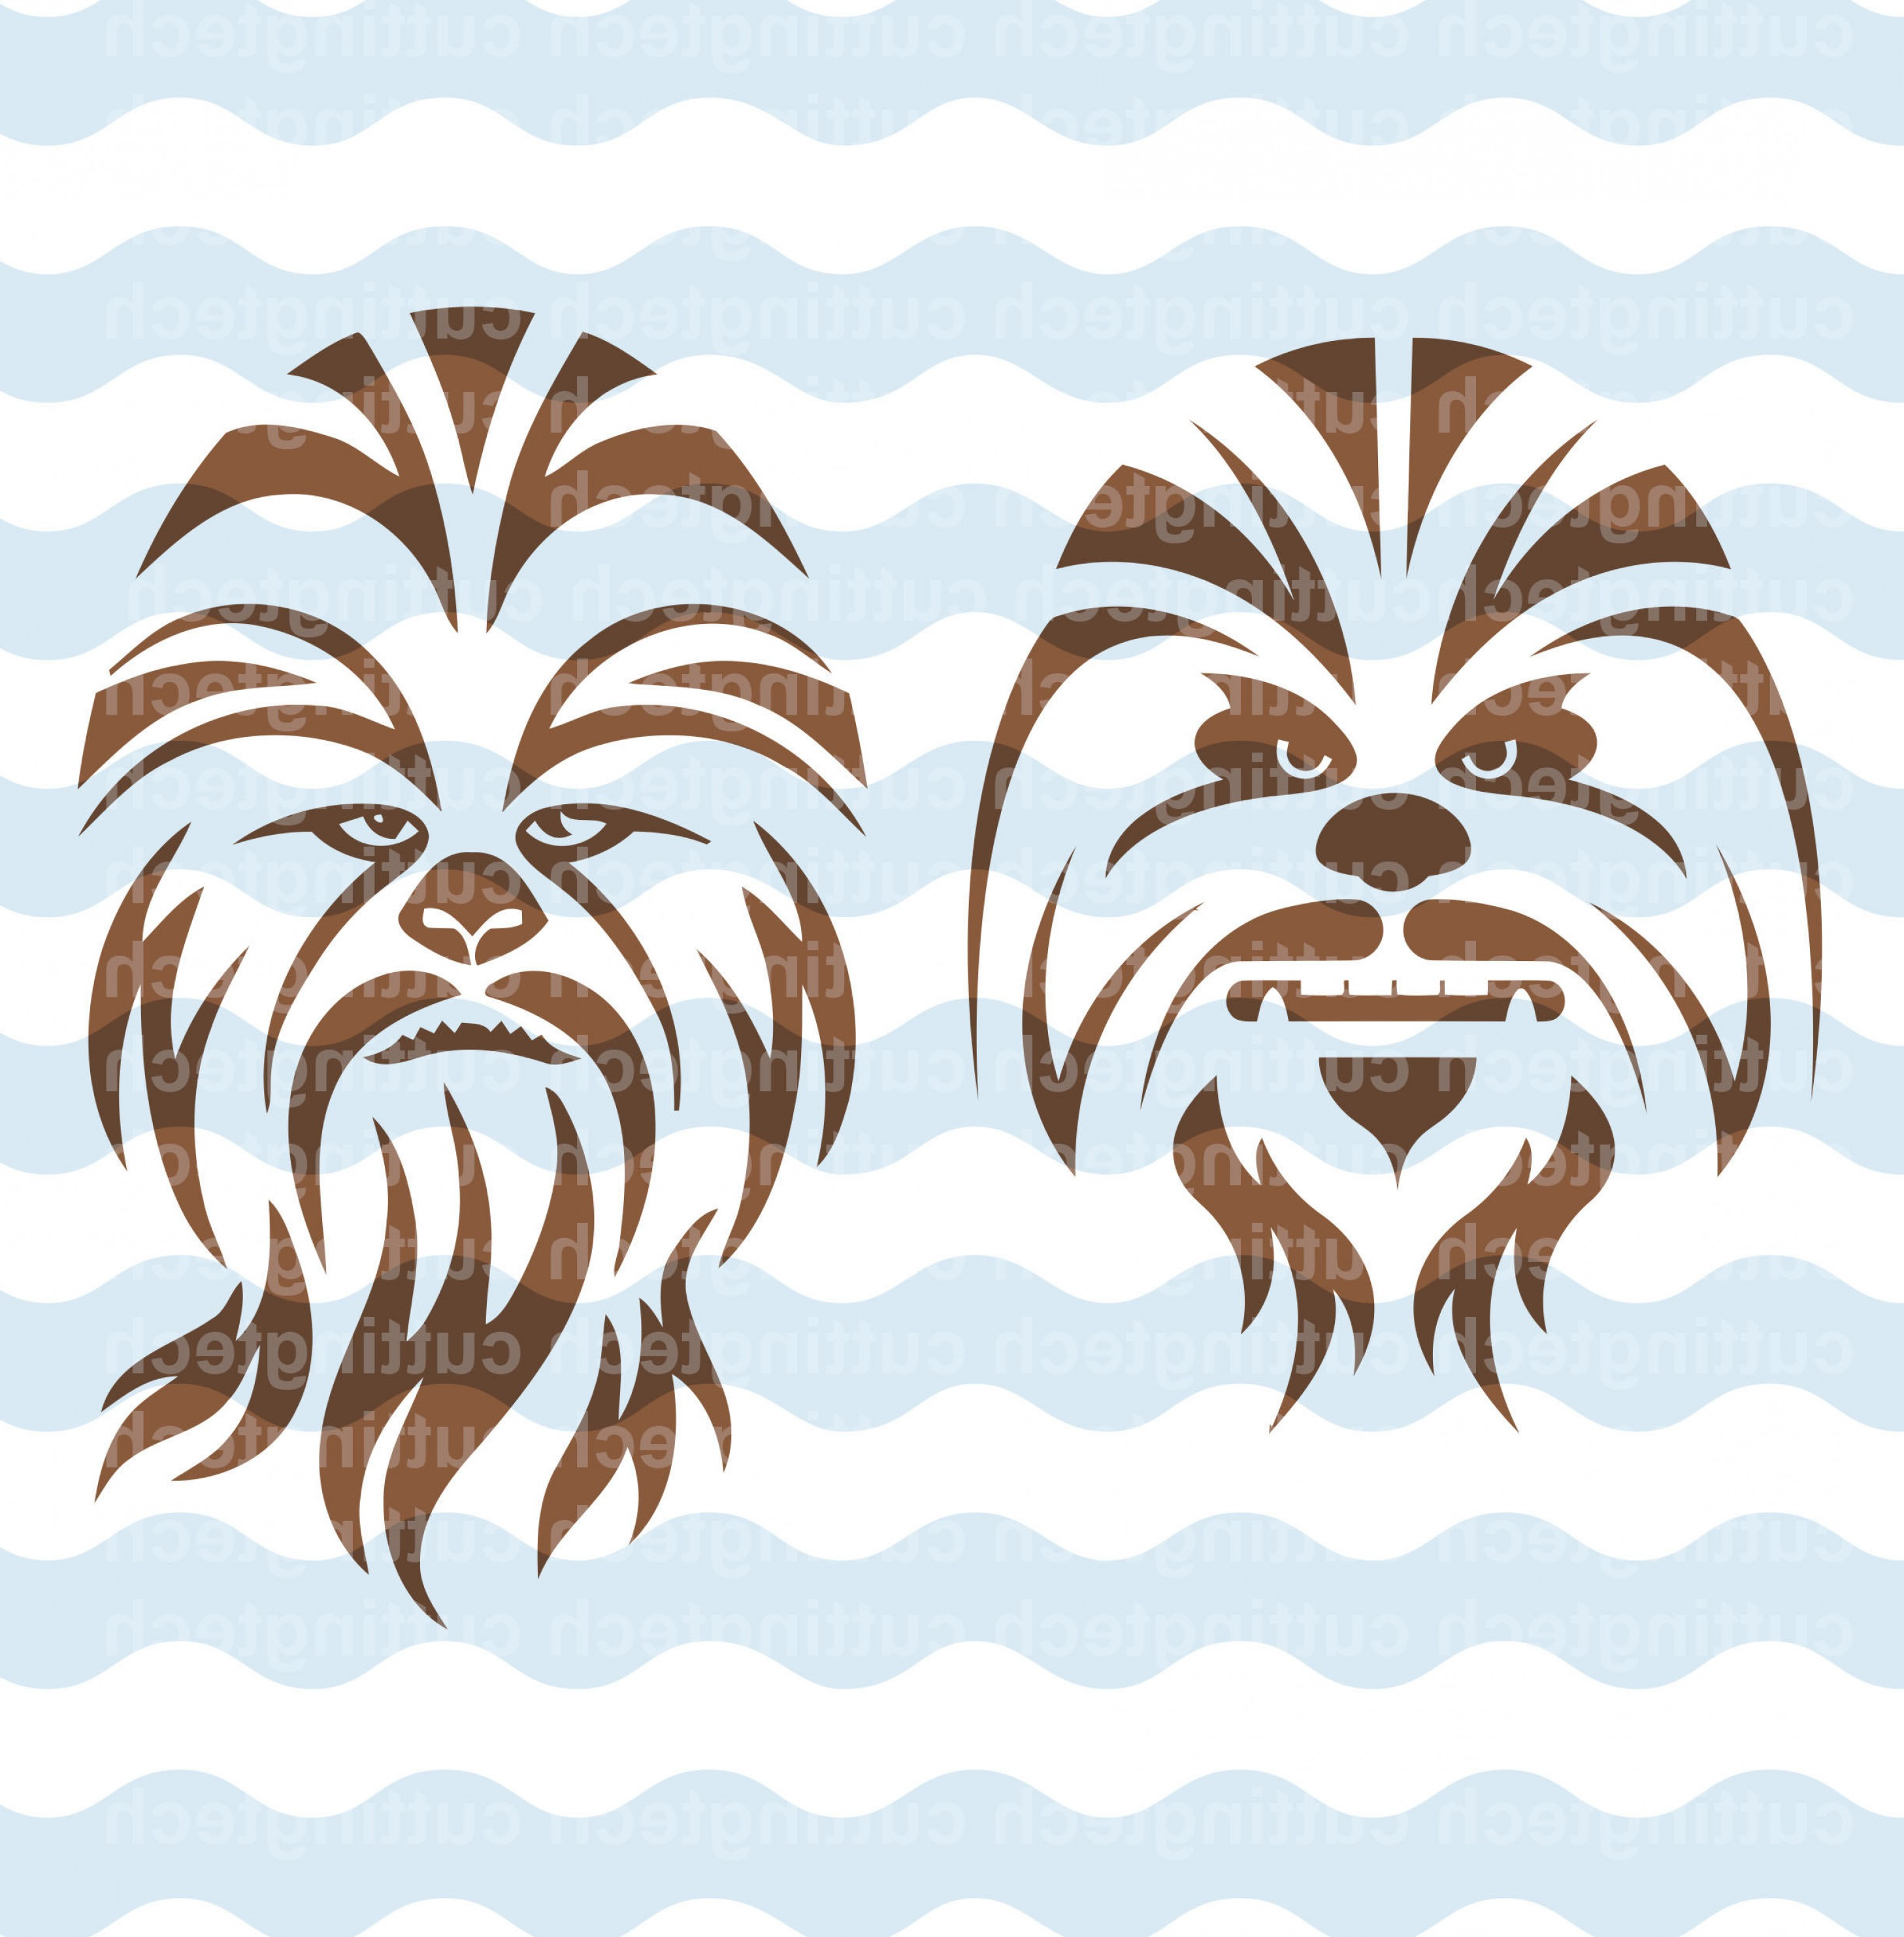 Wookie yedi svg png. Belt clipart chewbacca